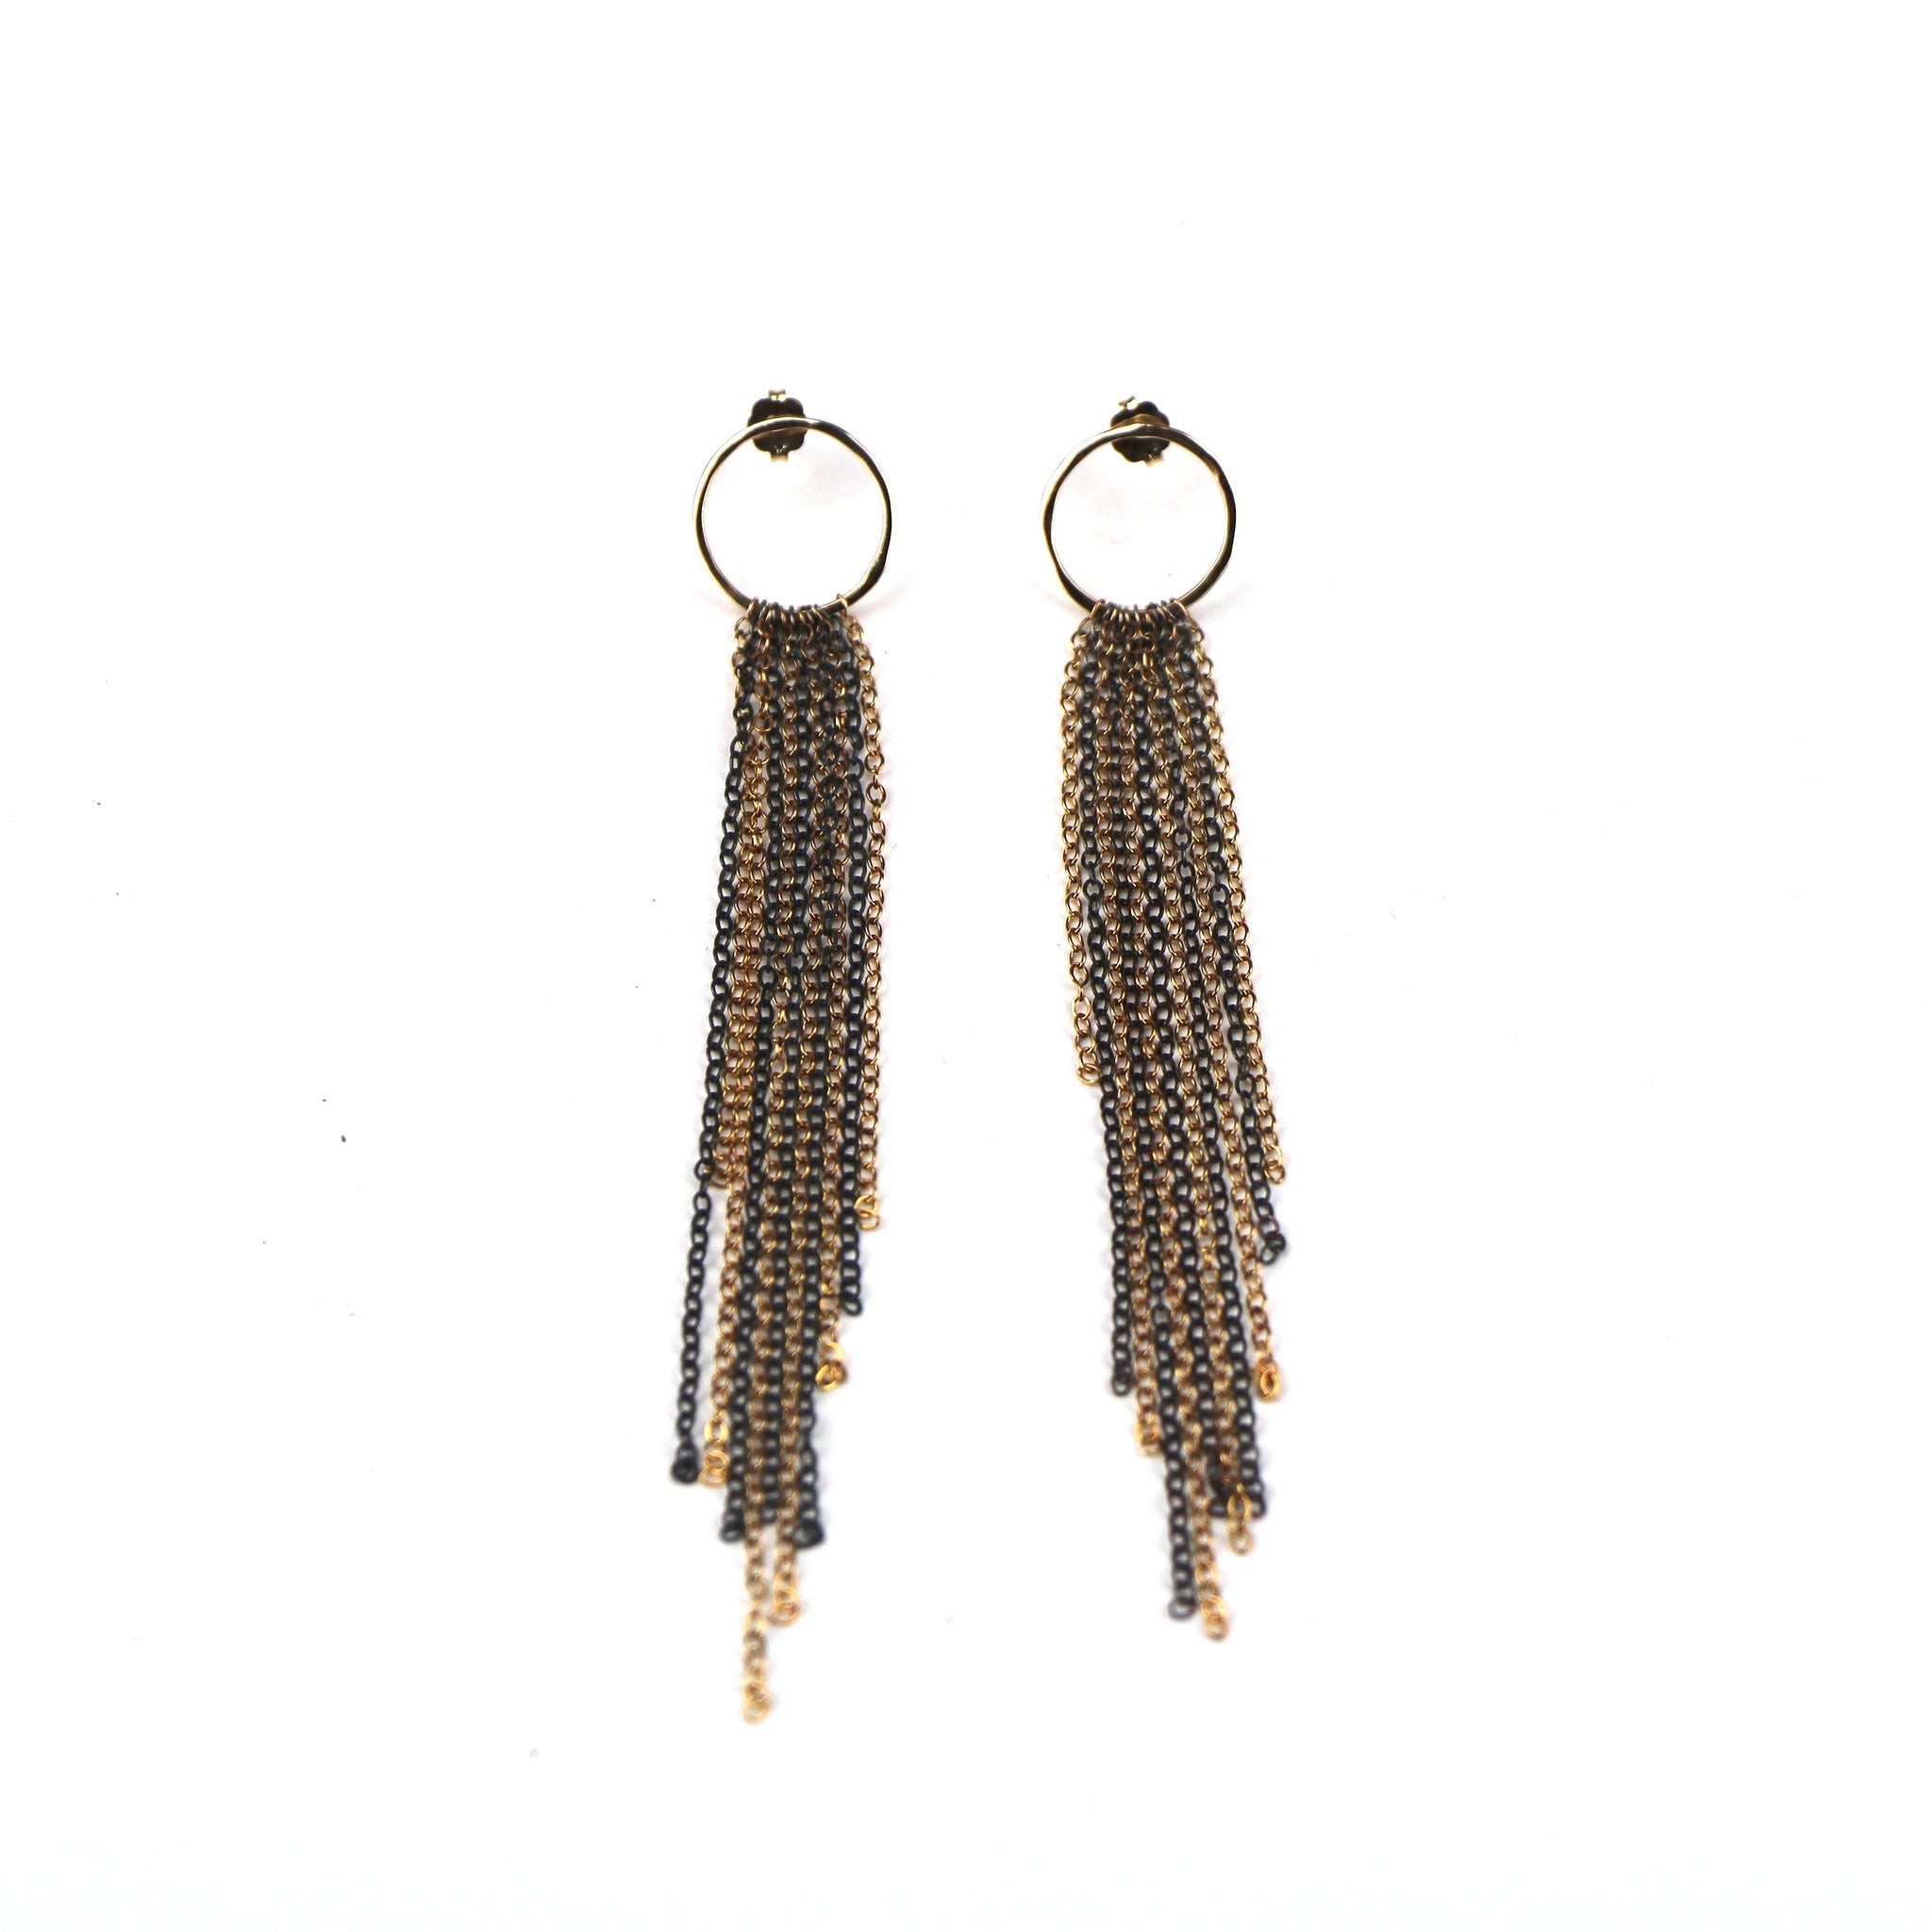 shop at in bead ivory kenneth earrings stud jay seed lane hoop product